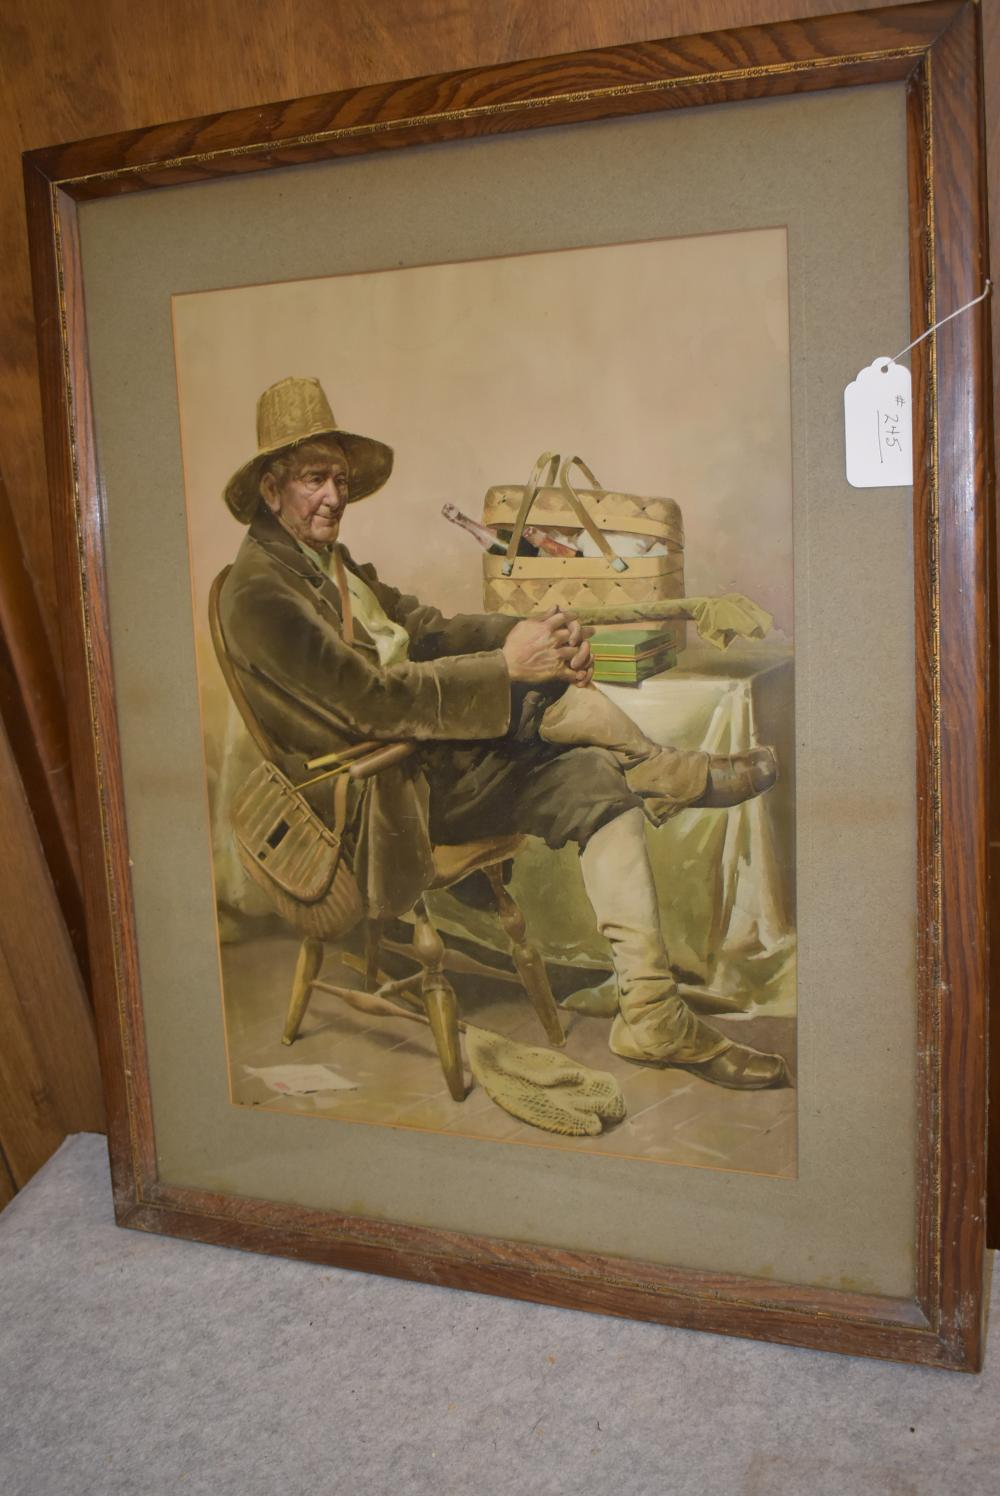 """Nice Framed print, shows an older gentlemen dressed in fishing outfit. Complete w/creel, tin tackle box, rod in bag, landing nets, Picnic basket w/two bottles of wine. Measures 24 ½"""" x 30 ½"""" framed."""